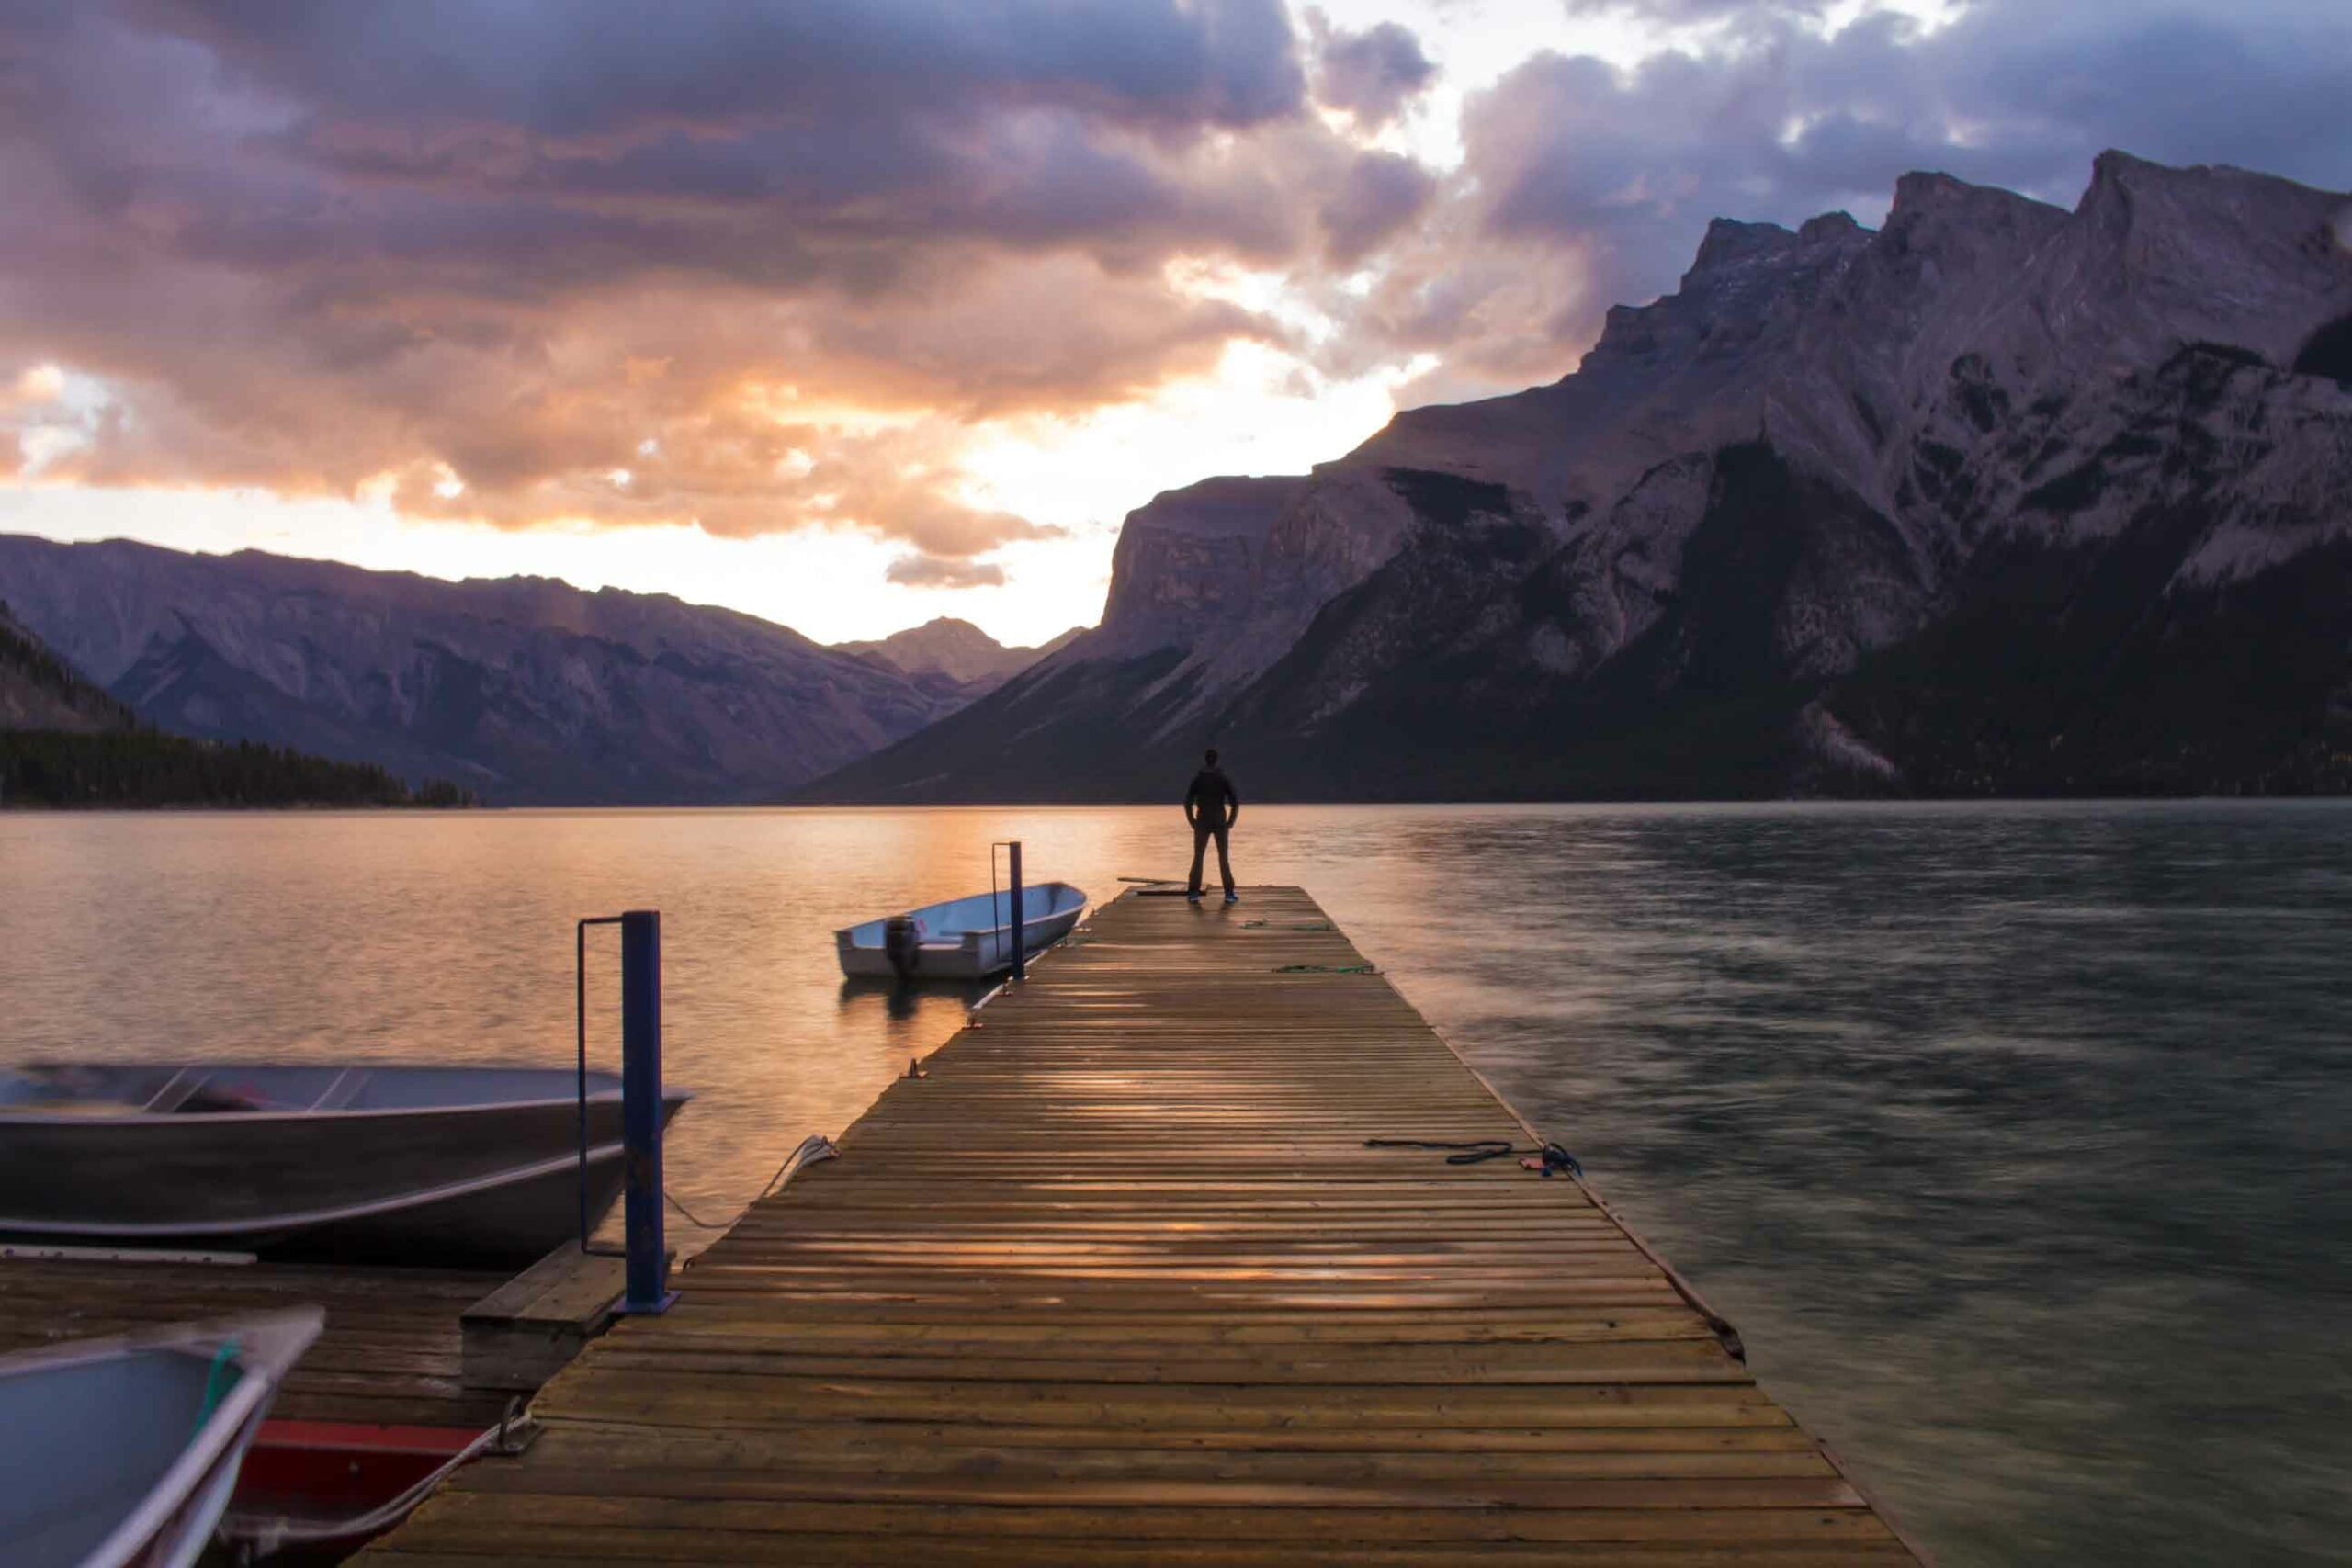 A person stands at the end of a wood dock at sunset on Lake Minnewanka in Banff during summer in the Canadian Rockies